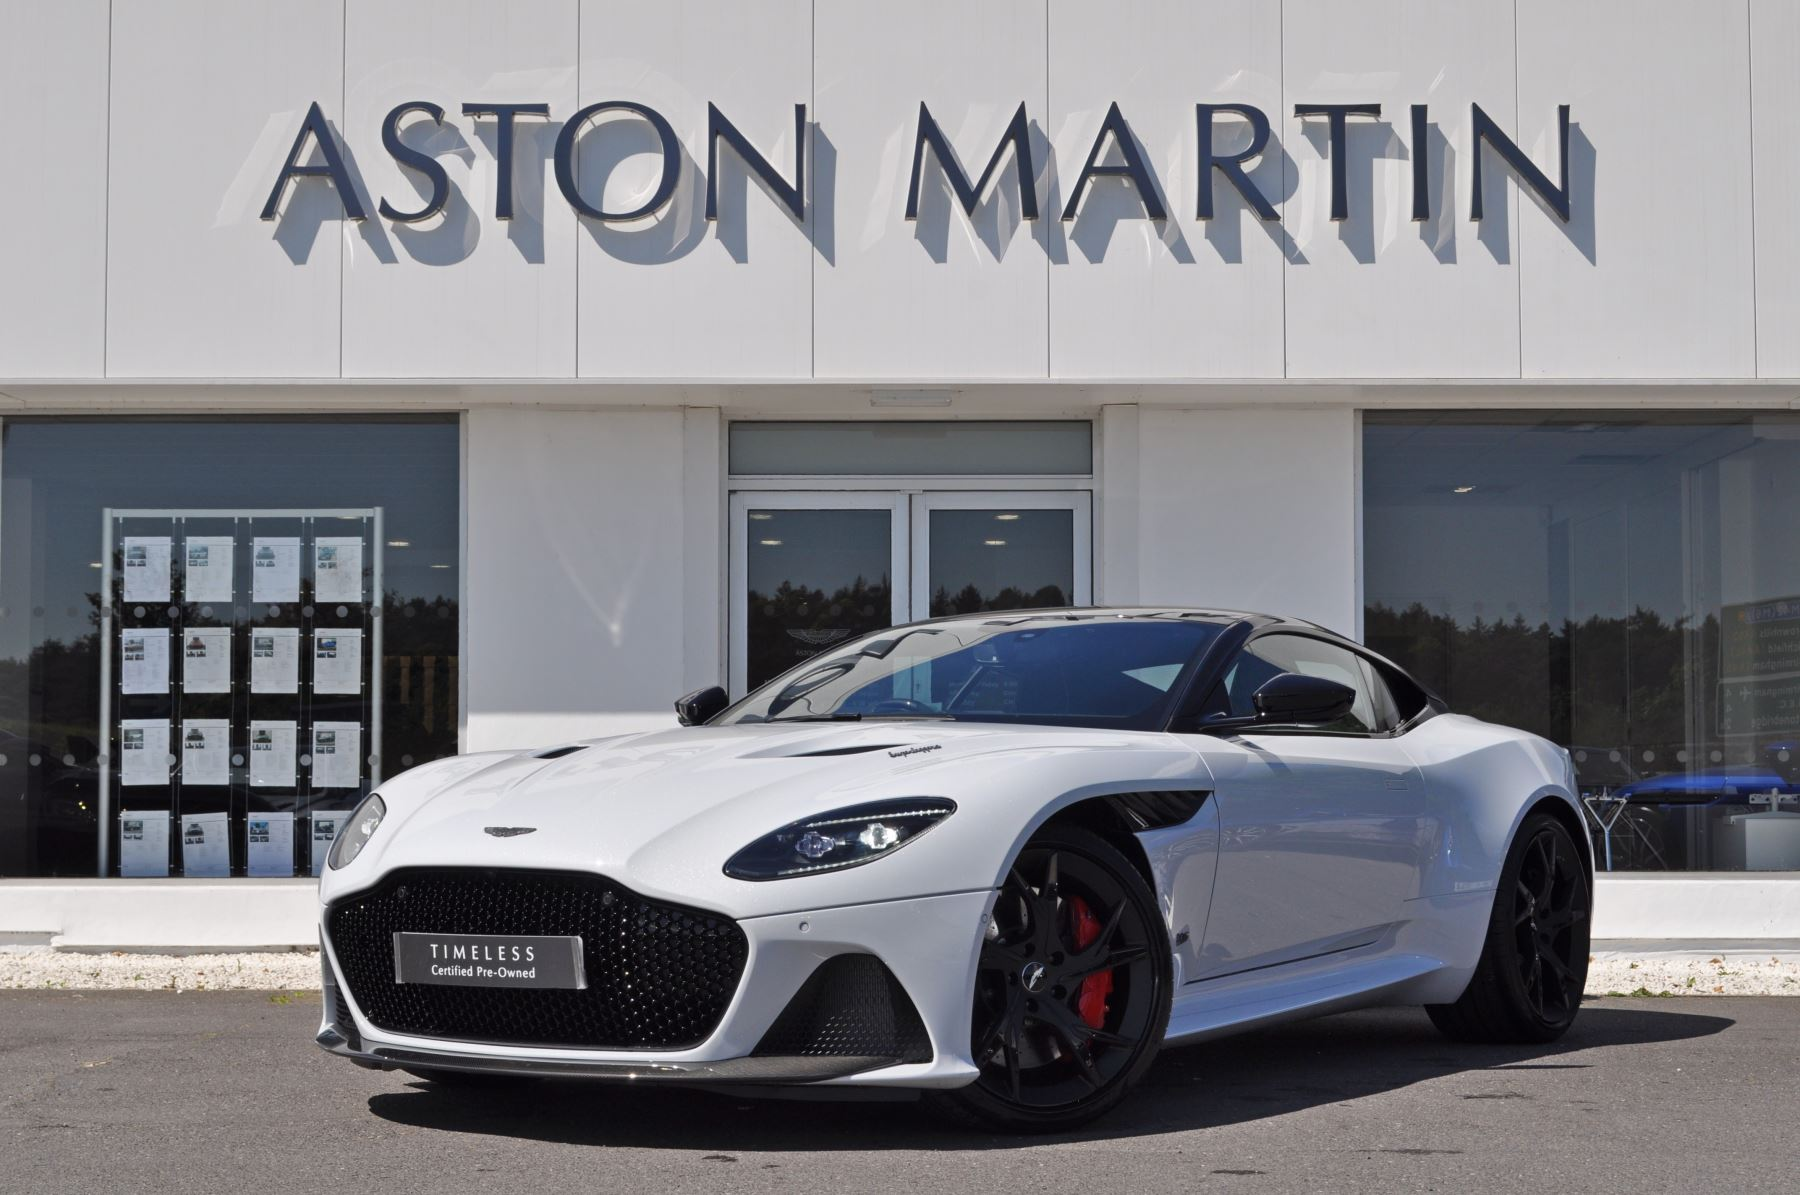 Aston Martin DBS V12 Superleggera 2dr Touchtronic 5.2 Automatic 3 door Coupe (2019)